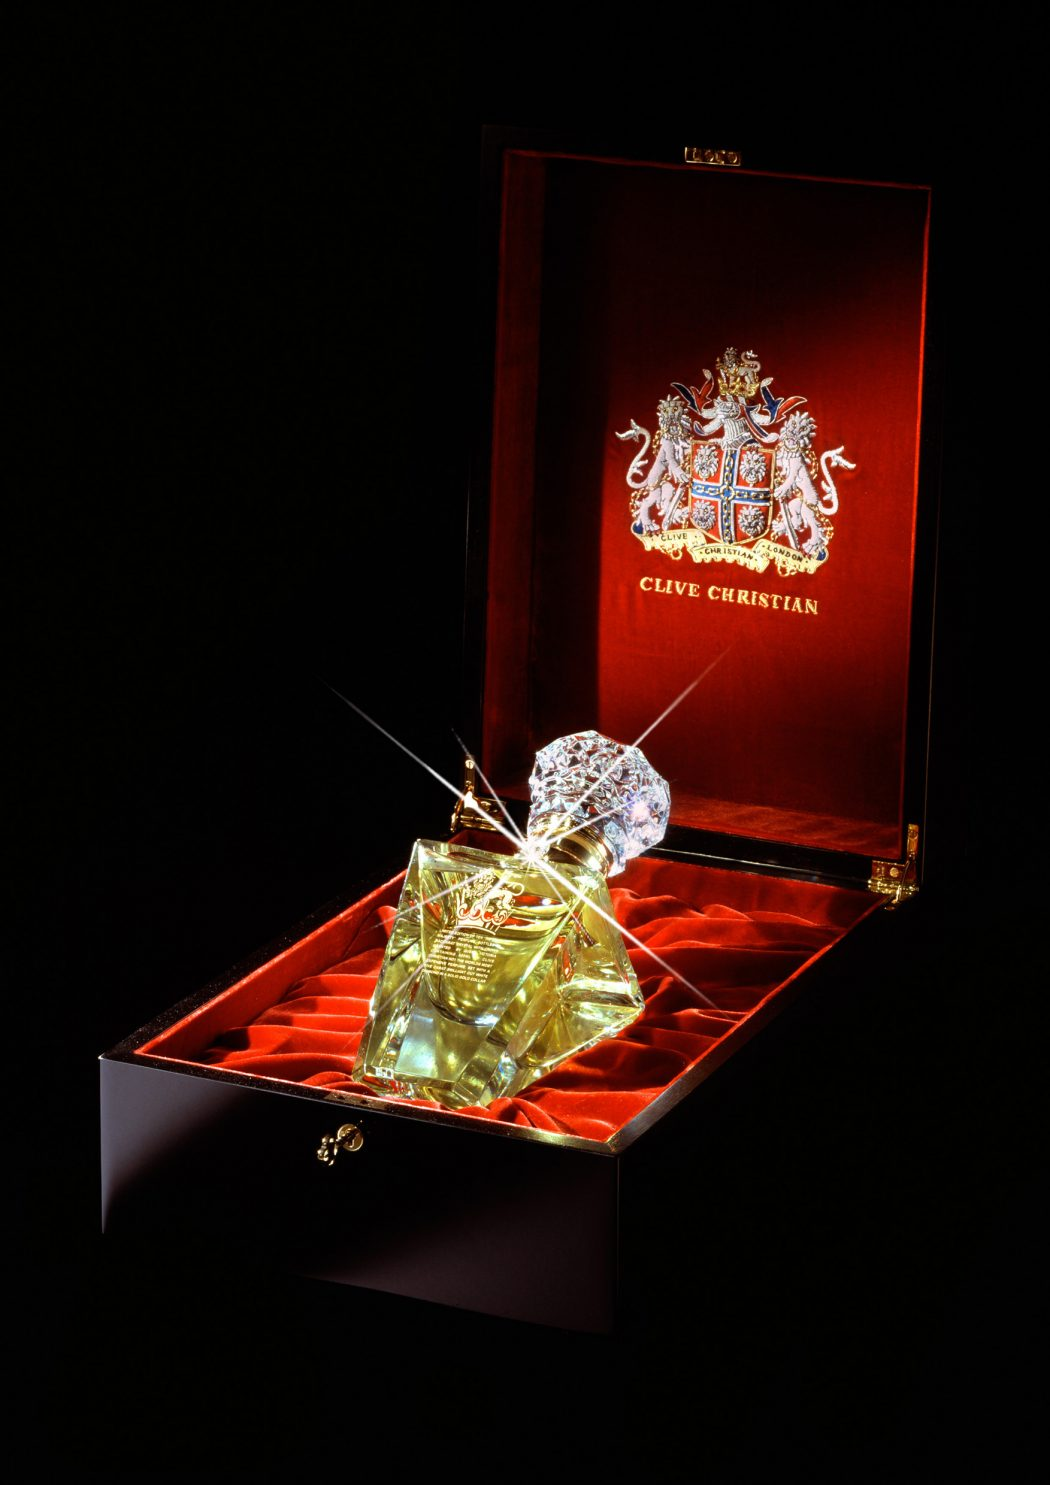 clive christian no 1 perfume imperial majesty edition